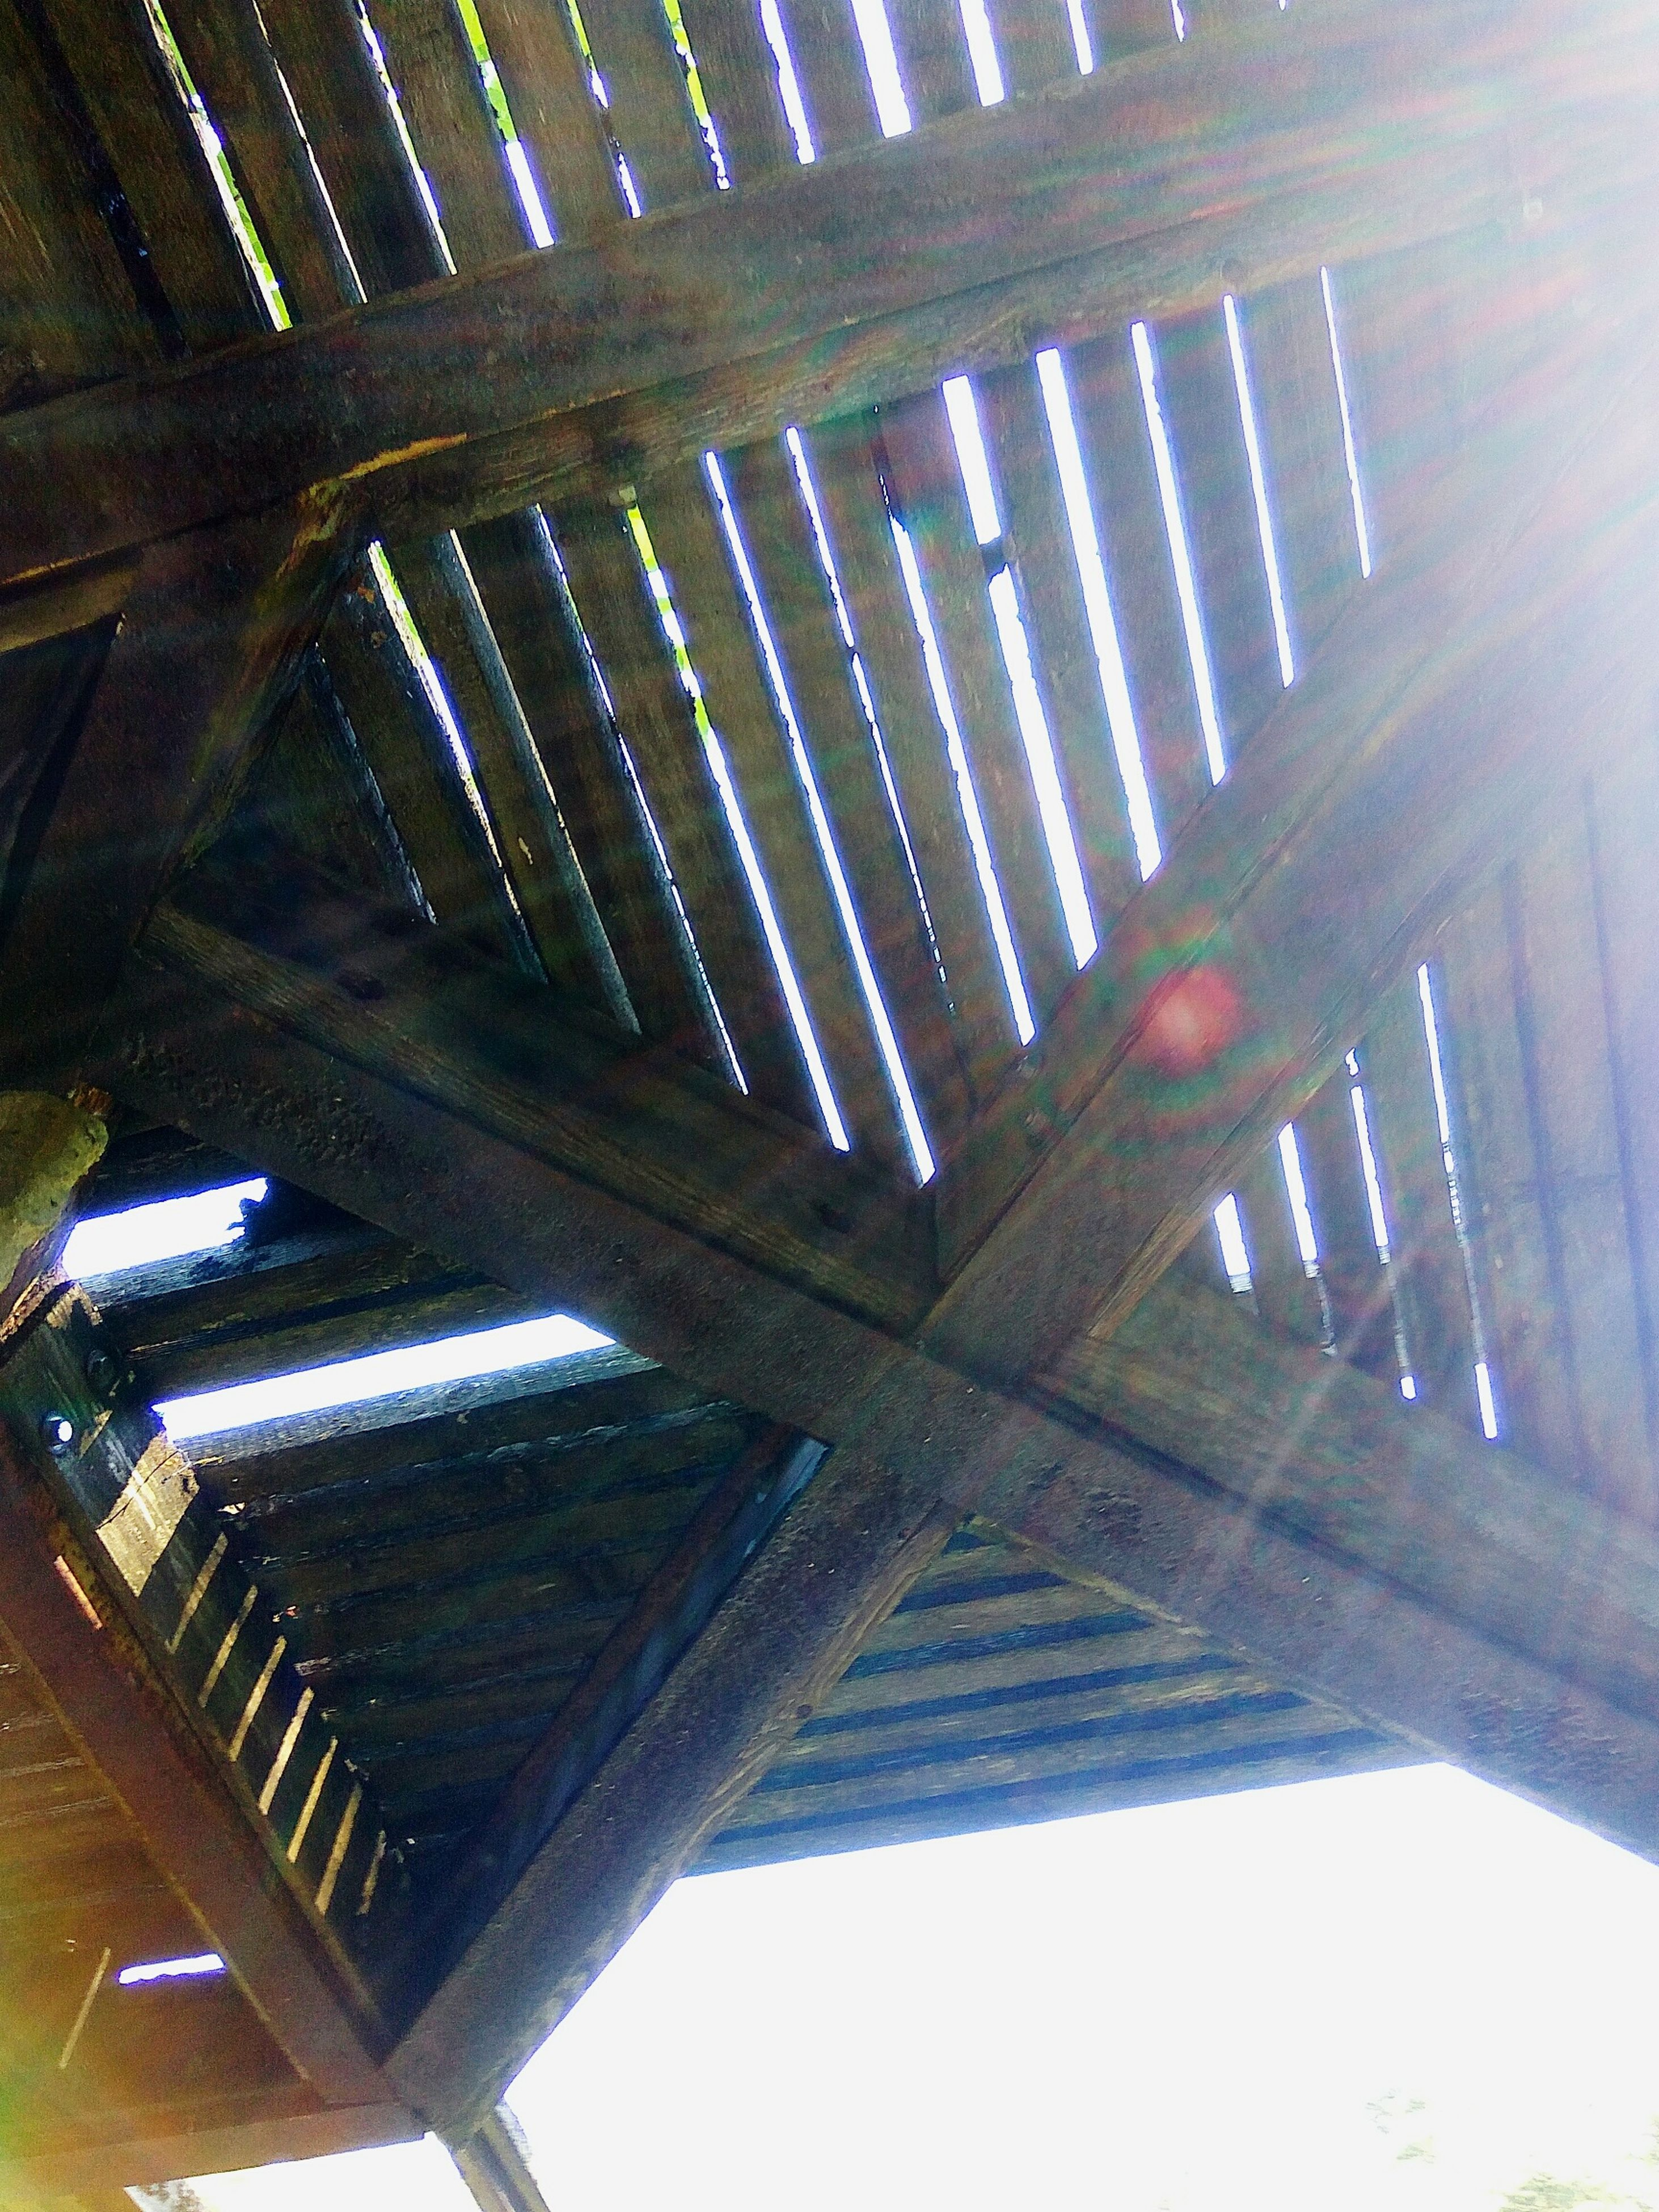 no people, low angle view, indoors, day, architecture, close-up